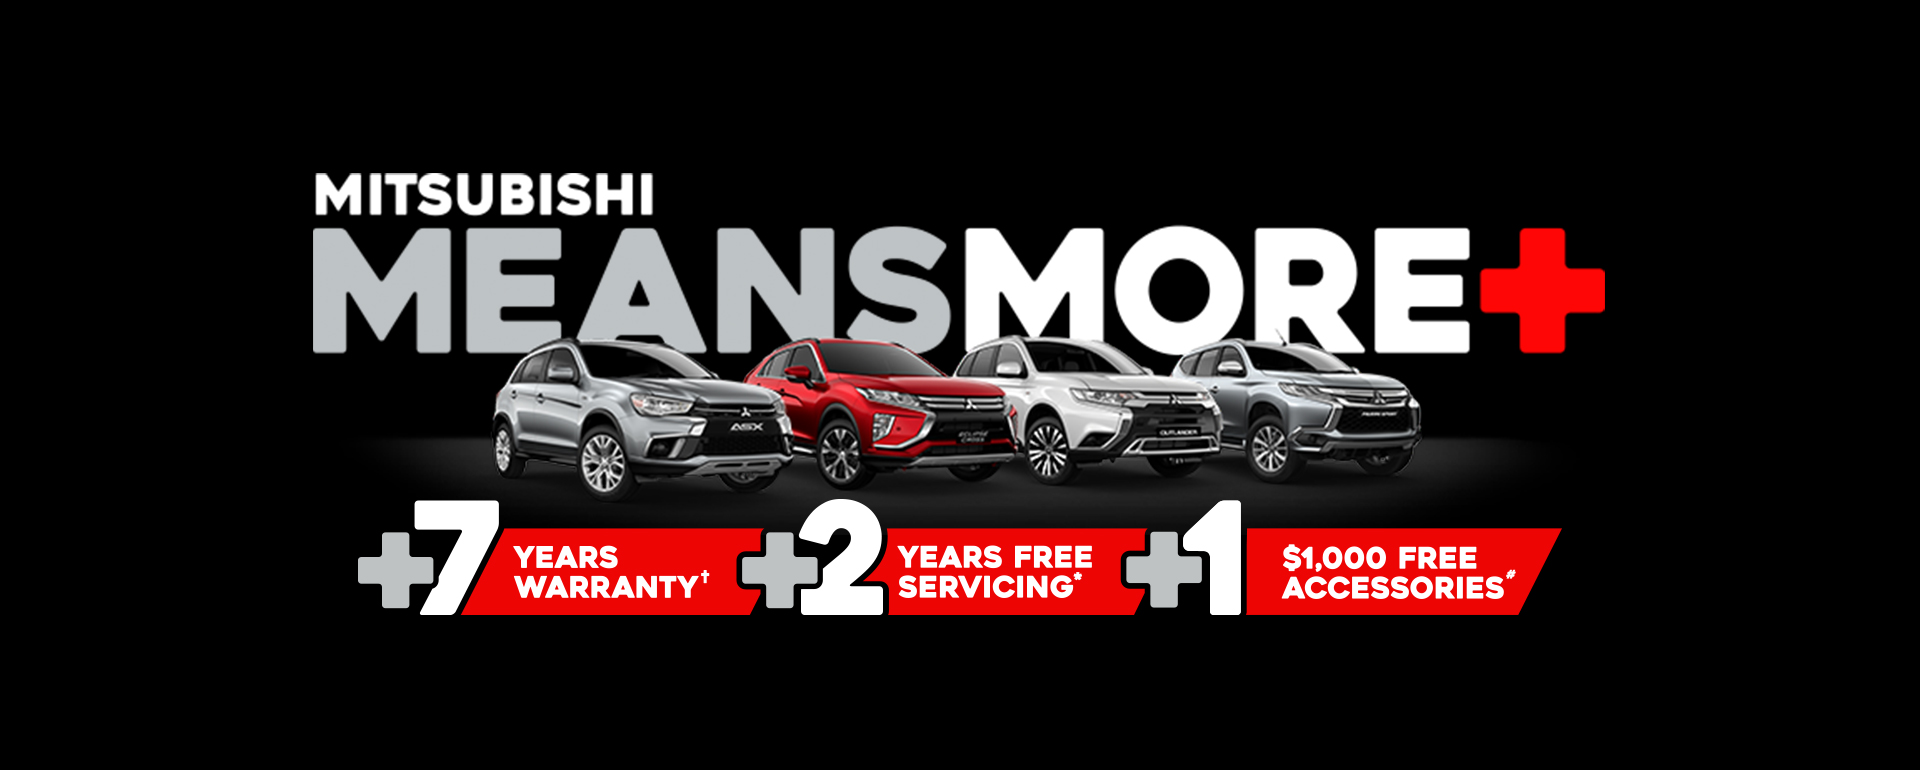 2bda545b71 John Hughes Group  Perth s Most Trusted New And Used Car Dealership